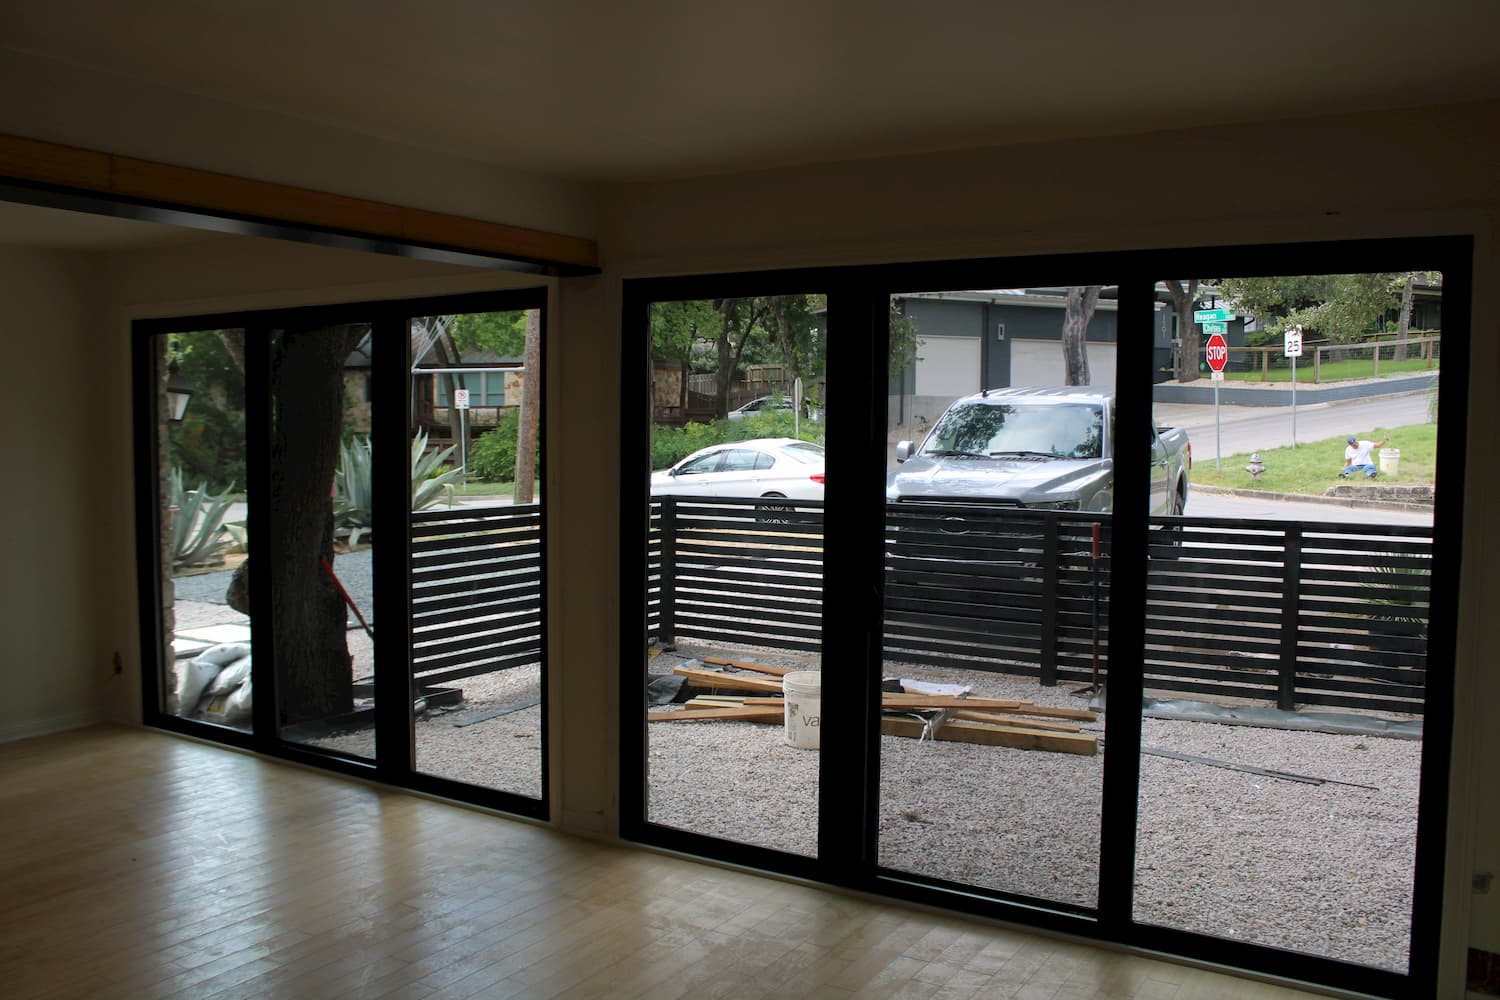 Interior shot of triple sliding glass doors in converted garage